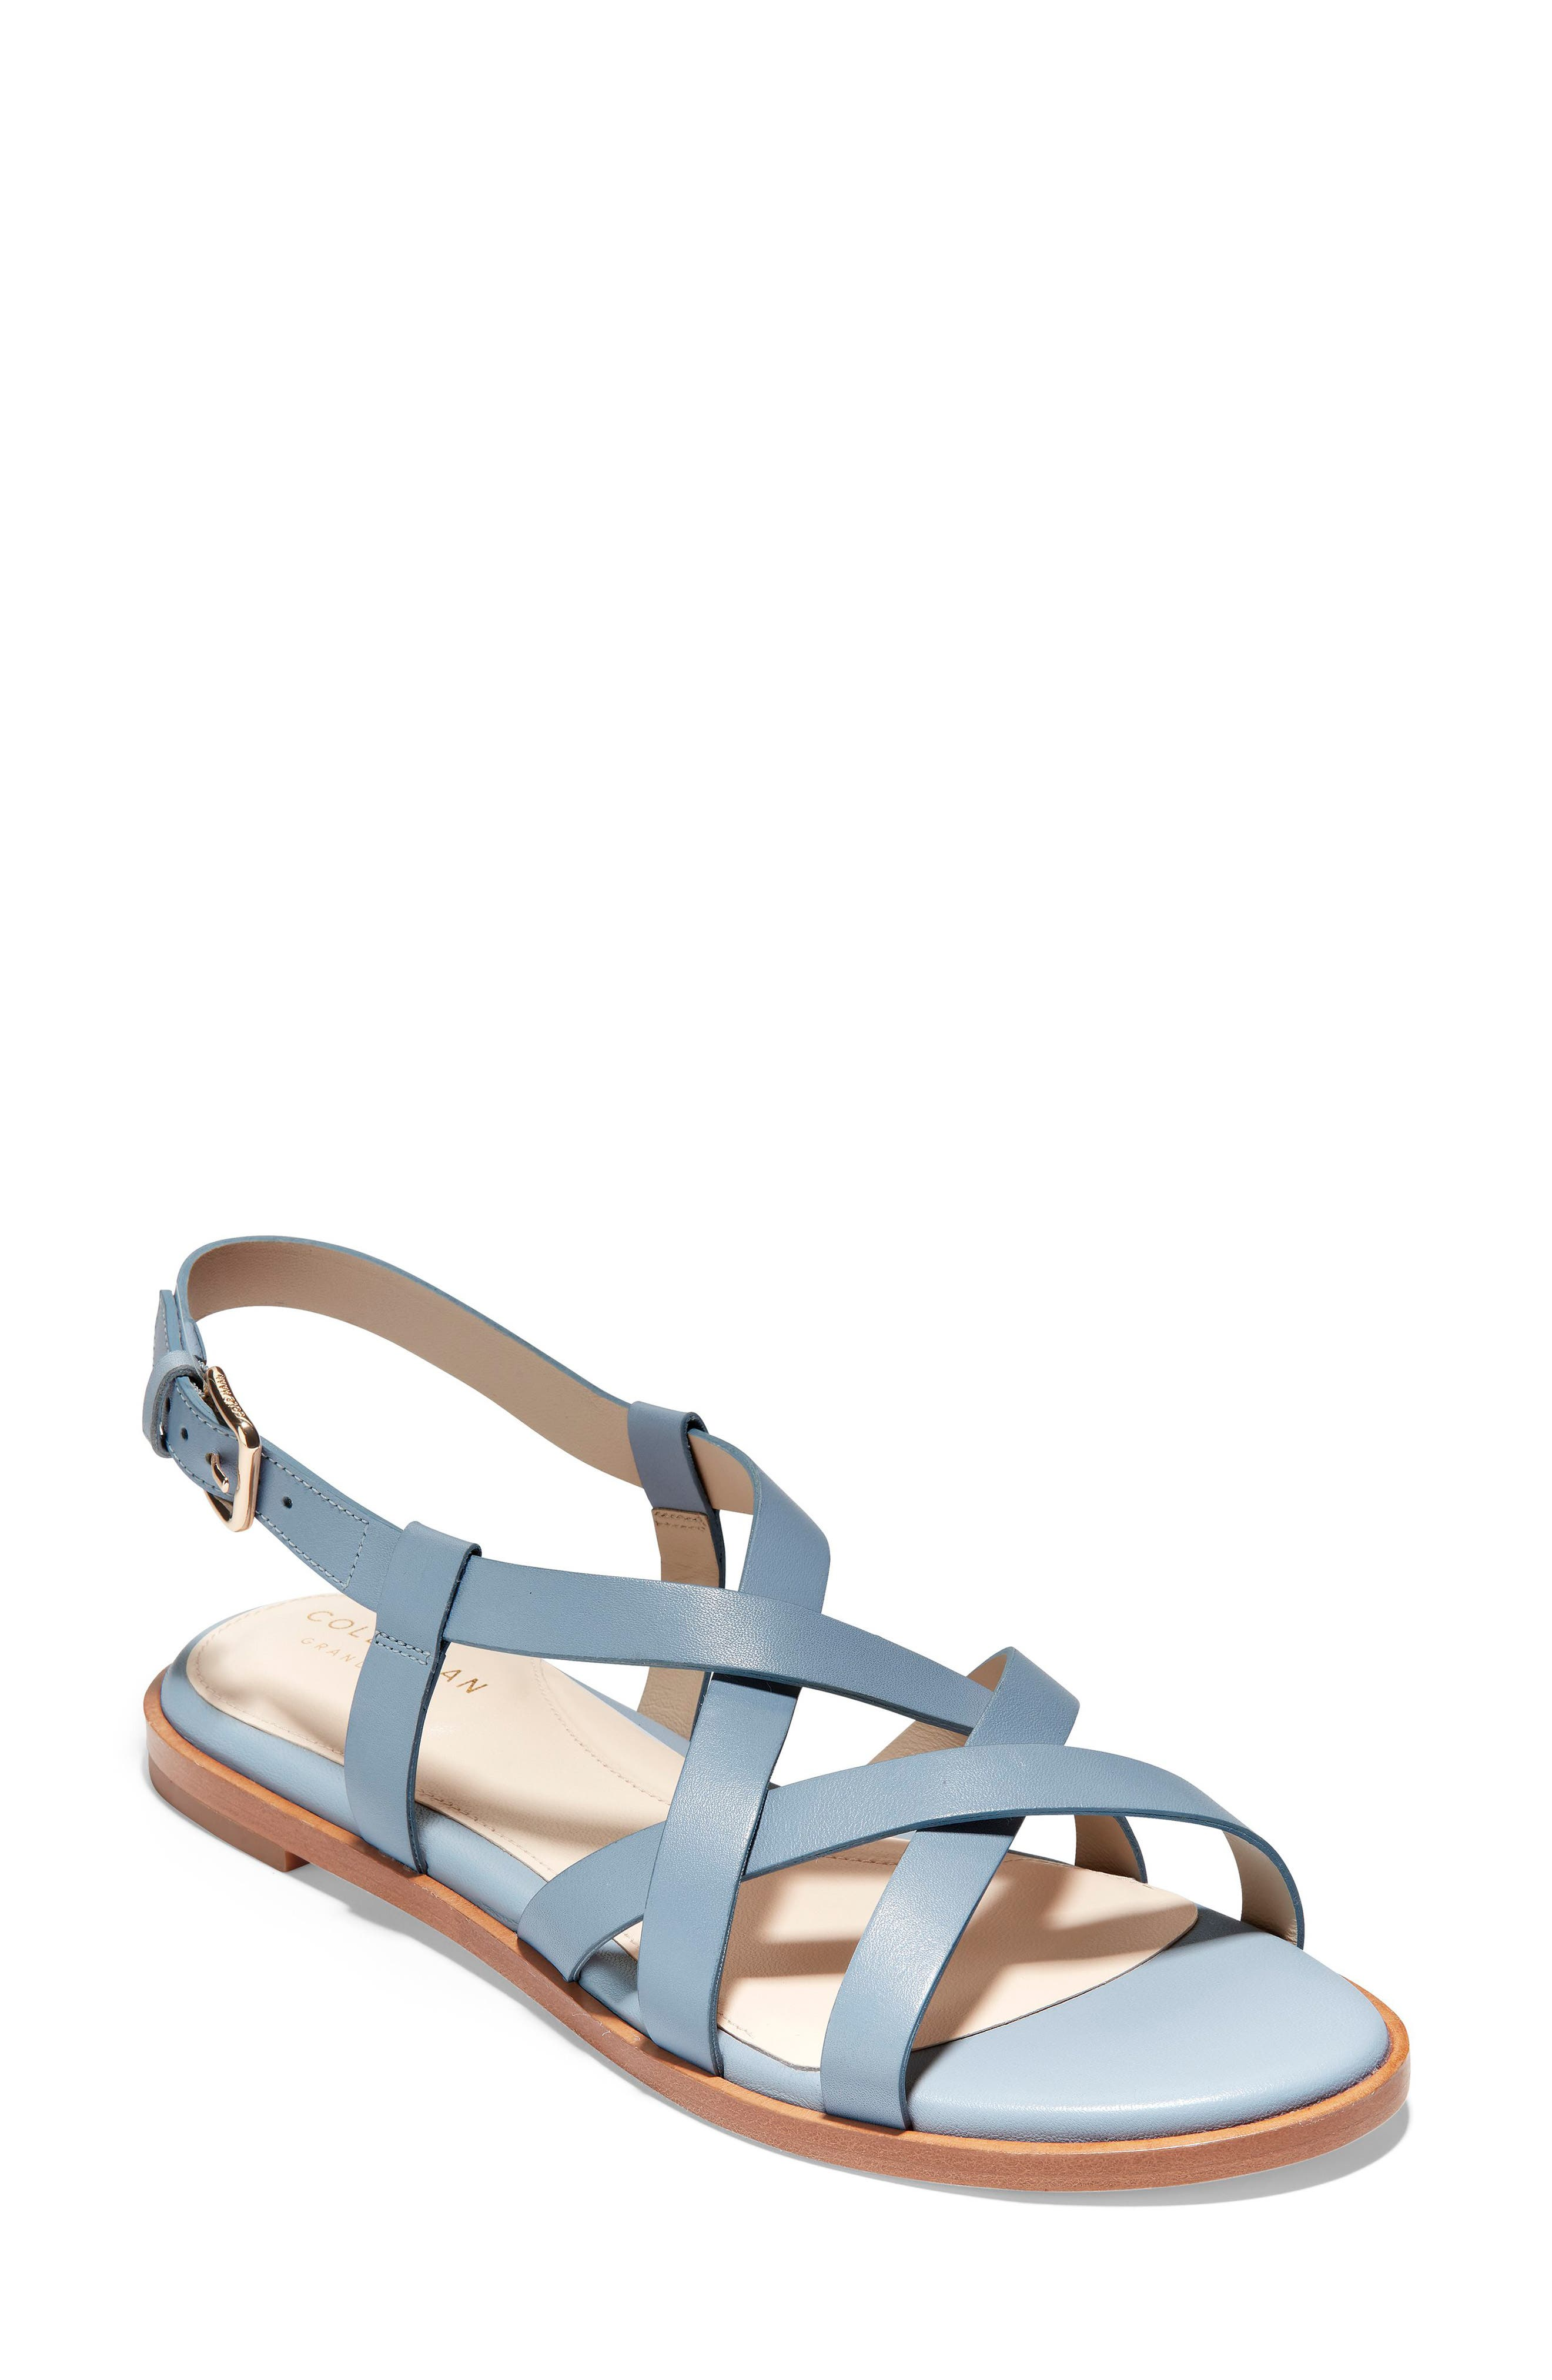 Cole Haan Analeigh Strappy Sandal B - Blue